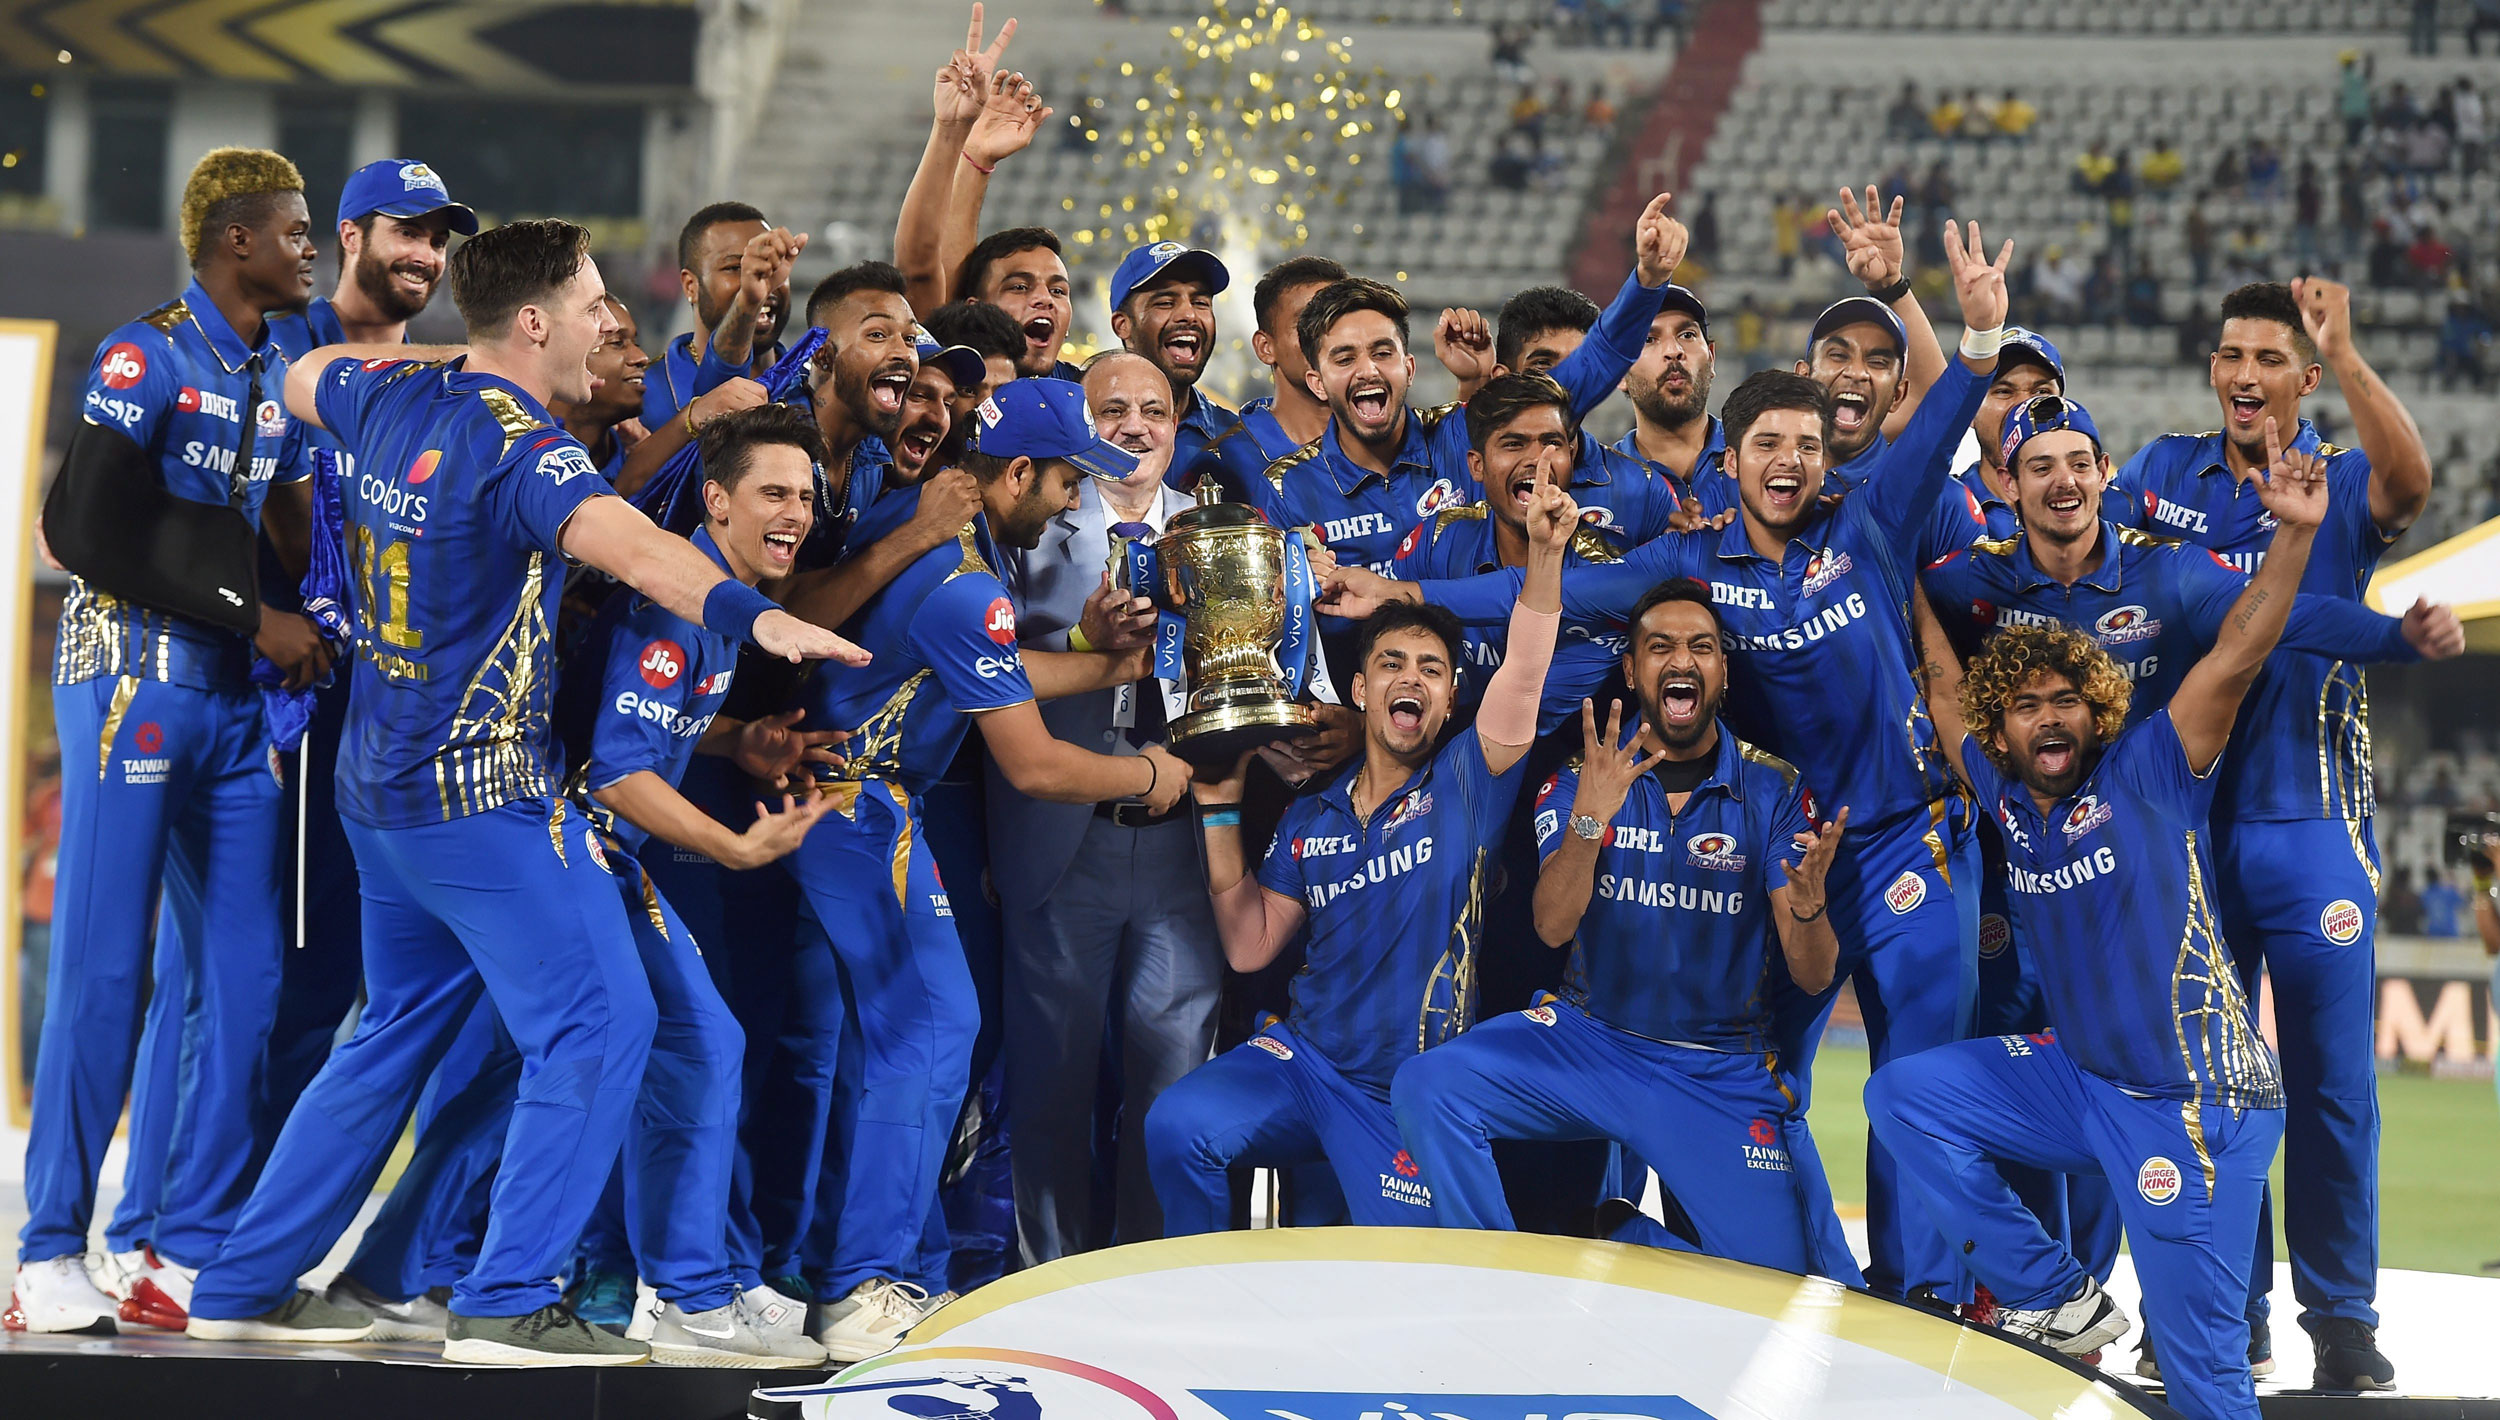 Mumbai Indians players celebrate with the IPL trophy after winning the finals against Chennai Super Kings, in Hyderabad, on May 13, 2019.